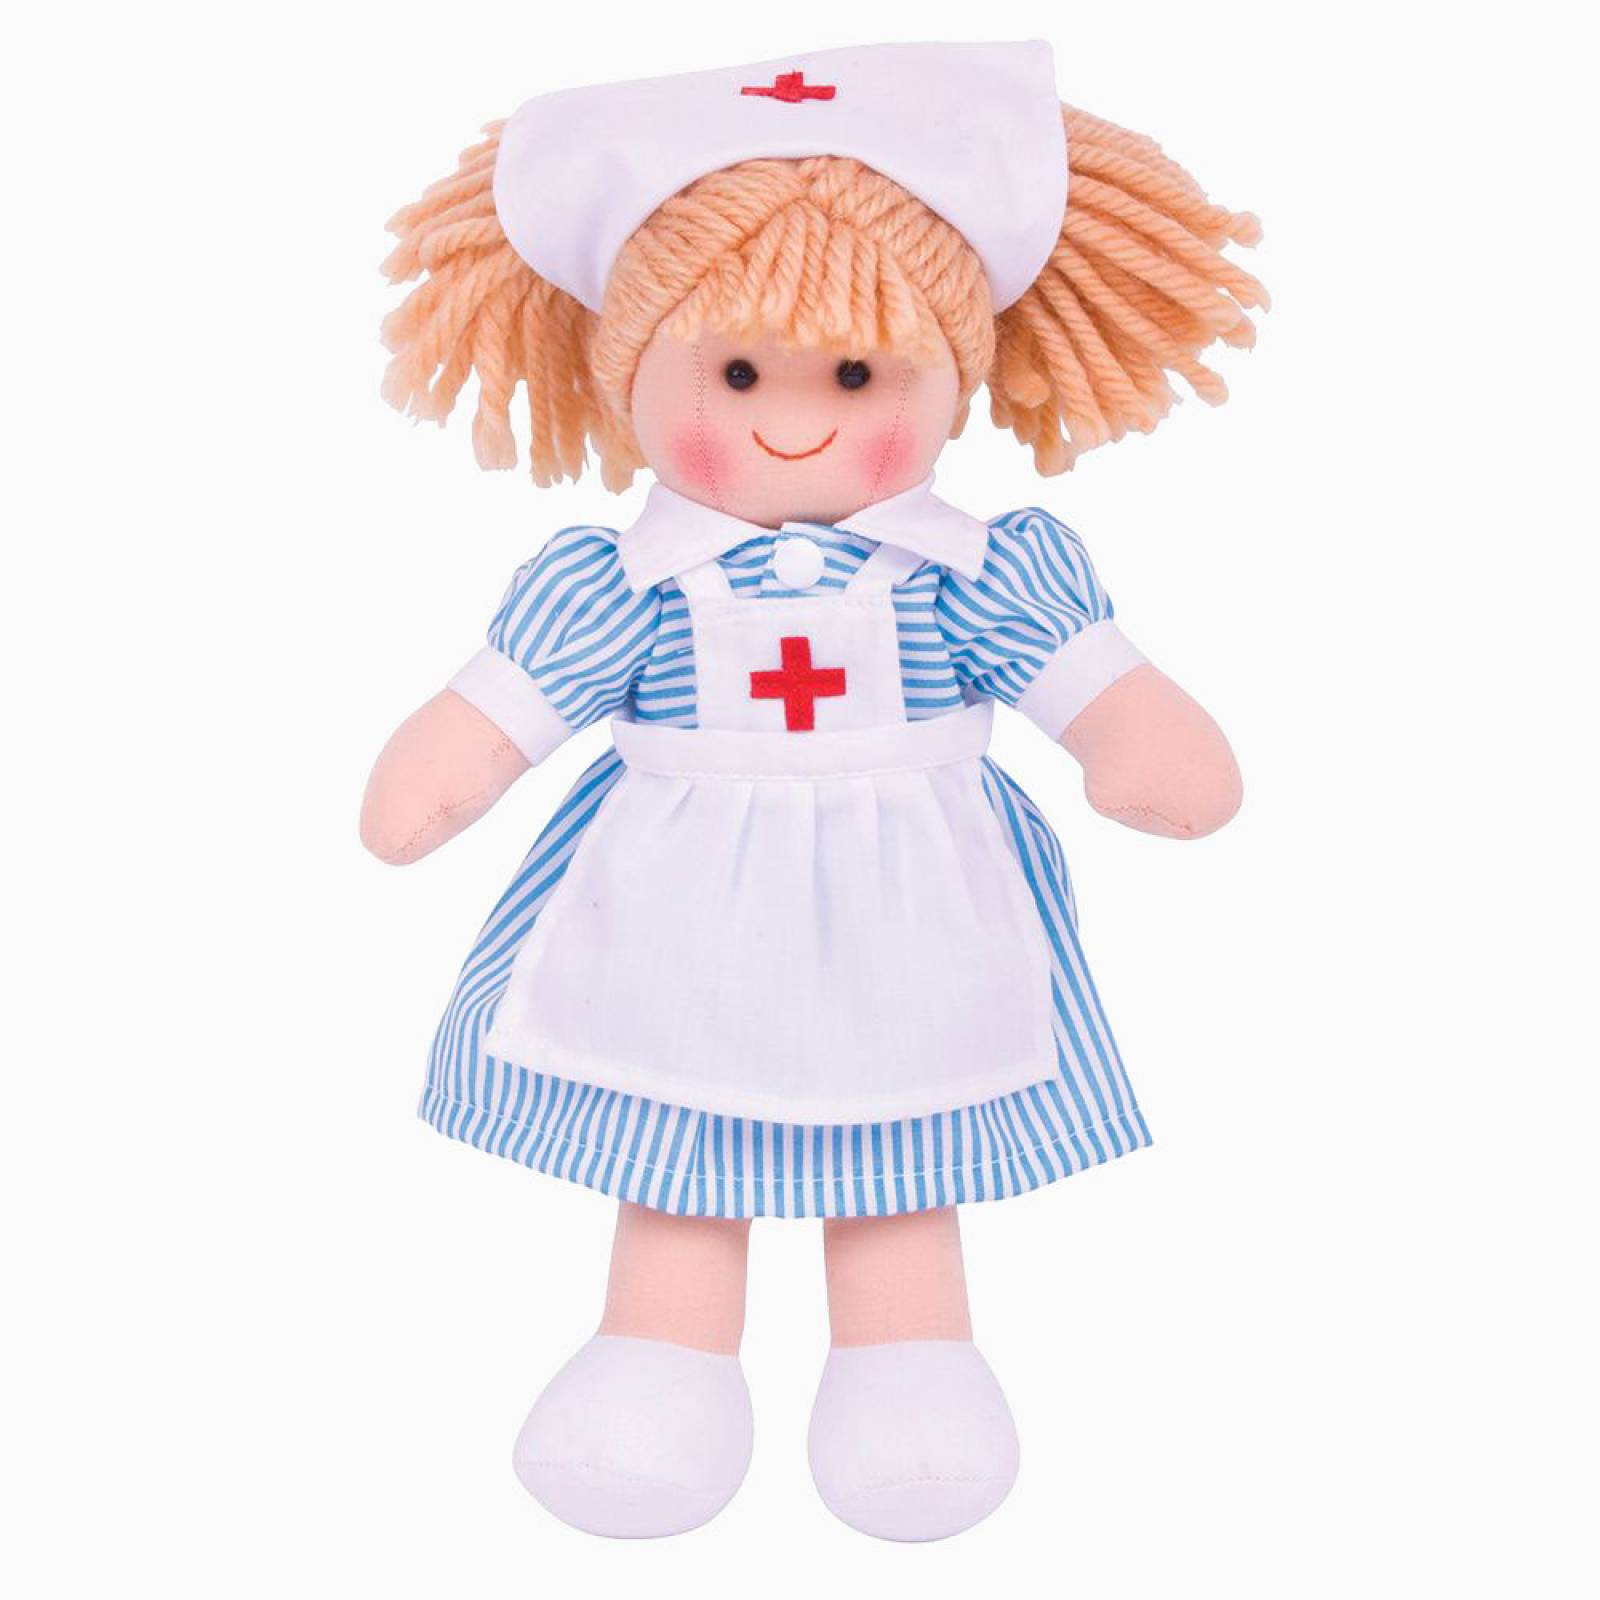 Nurse Nancy - Traditional Rag Doll 0+